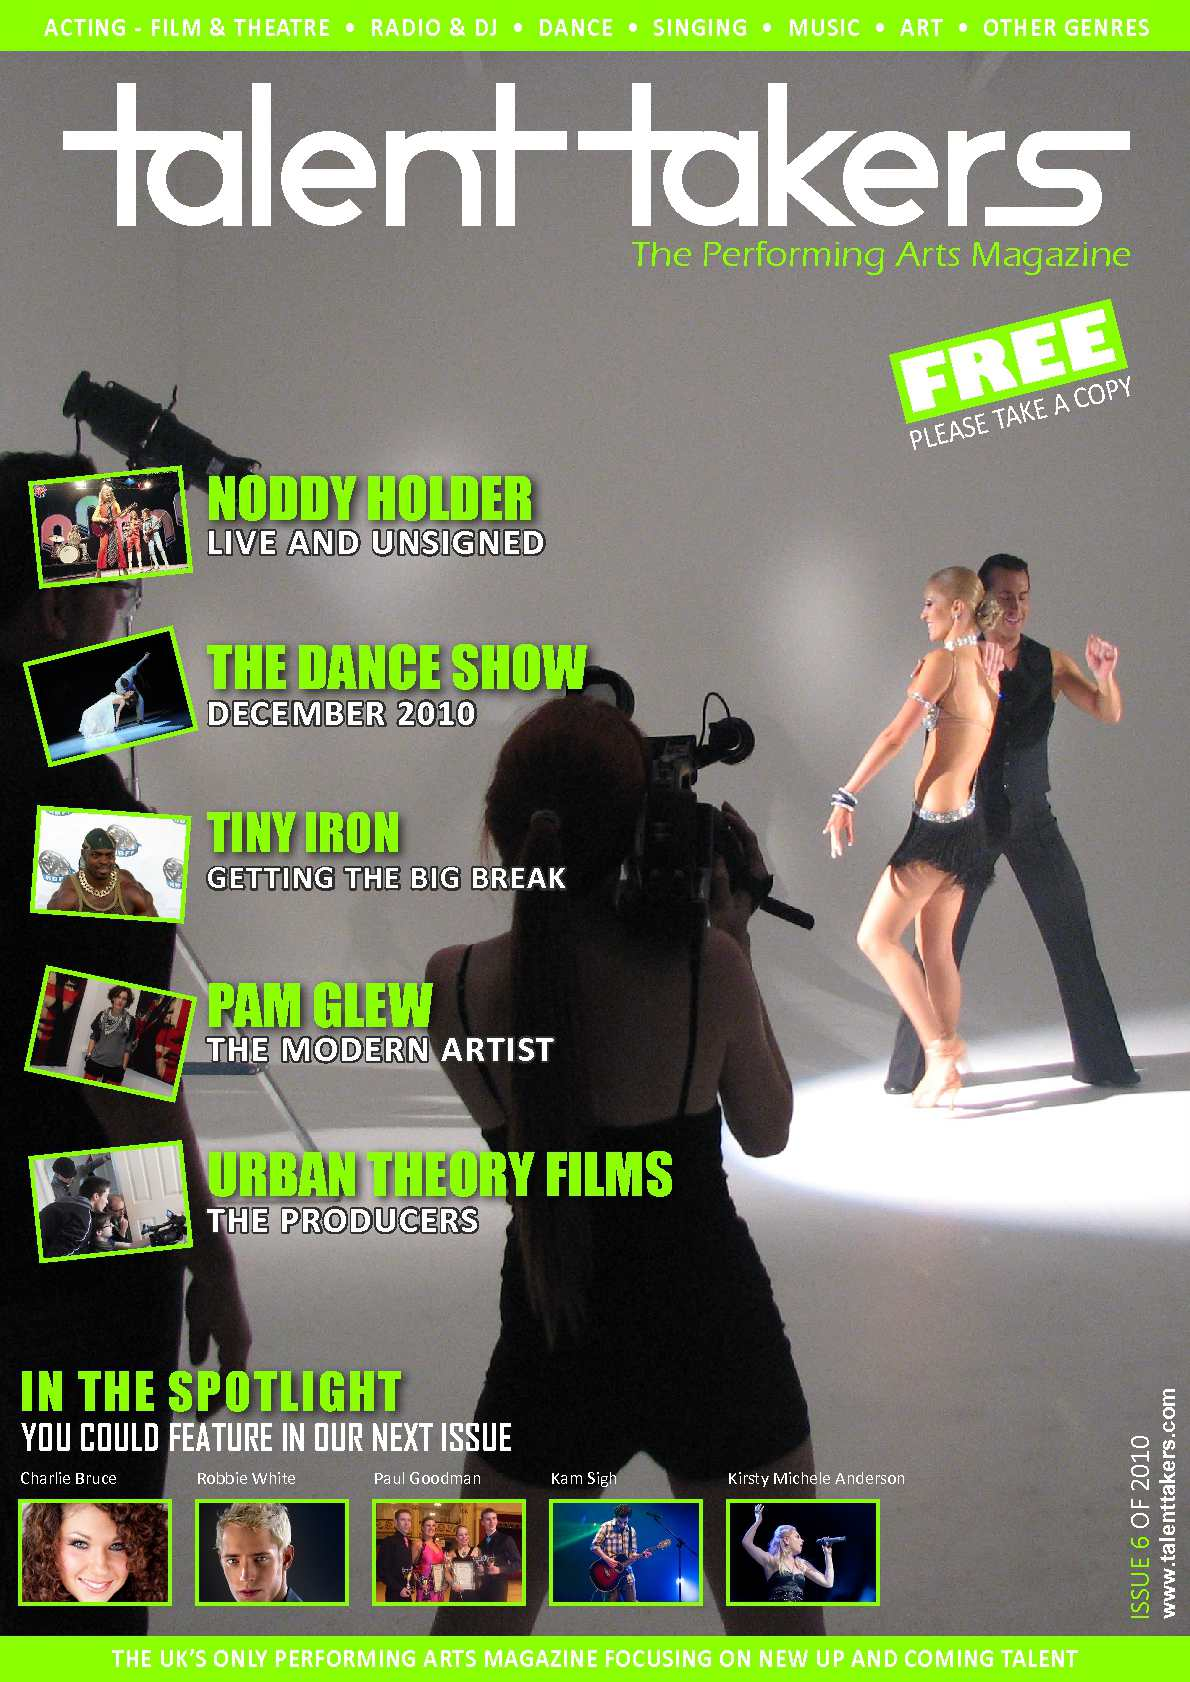 569c4ad360 Calaméo - Talent Takers - The Performing Arts Magazine - Issue 6